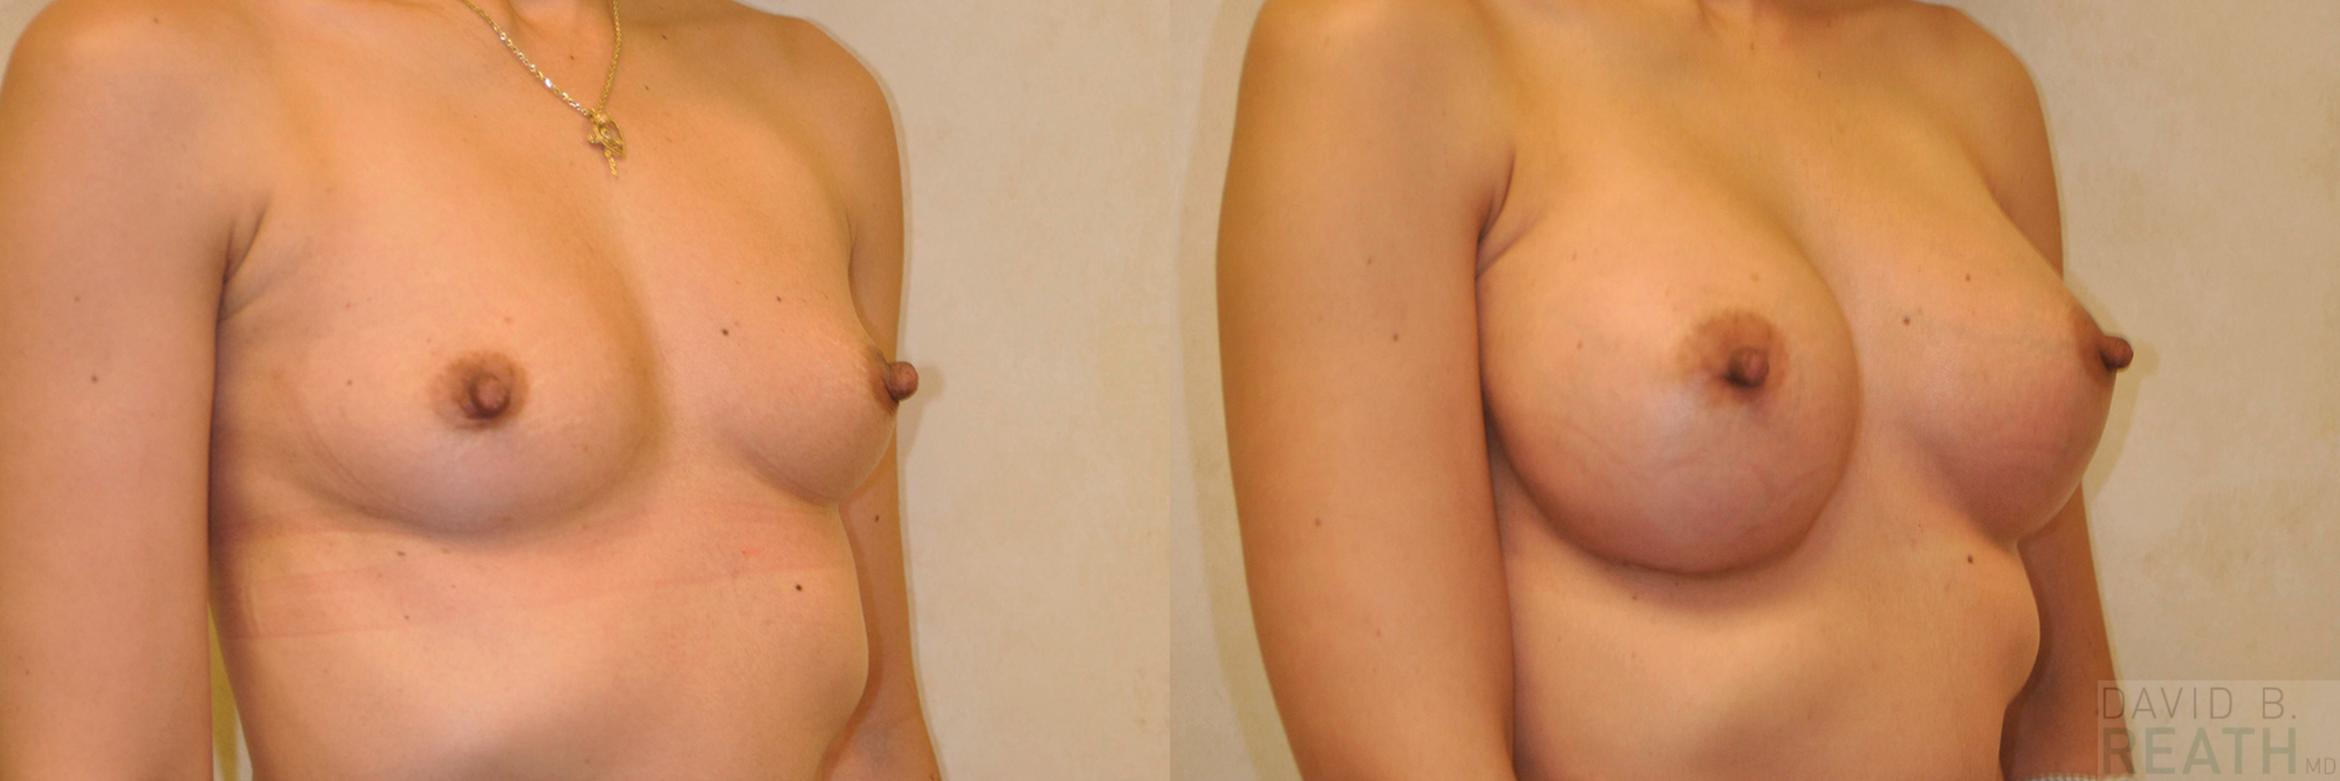 Breast Augmentation (Silicone) Before & After Photo | Knoxville, Tennessee | David B. Reath, MD